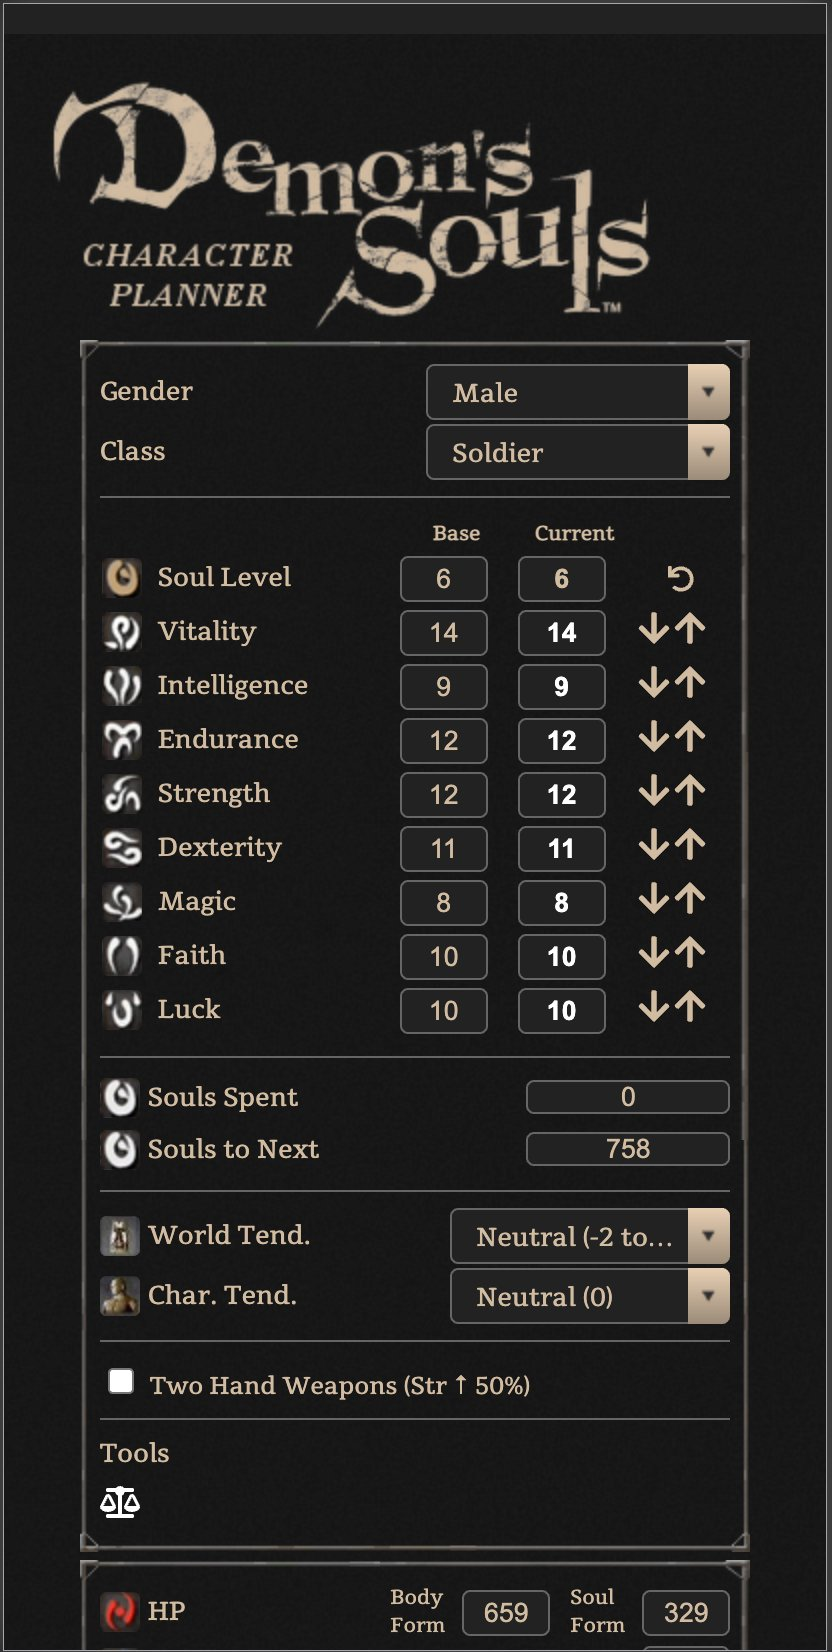 Nate On Twitter Alright The Demon S Souls Character Planner Update Is Live This Includes The New Content Various Bugfixes And Improvements And Much Better Mobile Support Https T Co Ht3aihvbql I M Going To Thread Some L'historique des classements indique la popularité de mugenmonkey for dark souls 3 sur ios app store et son évolution au fil du temps. souls character planner